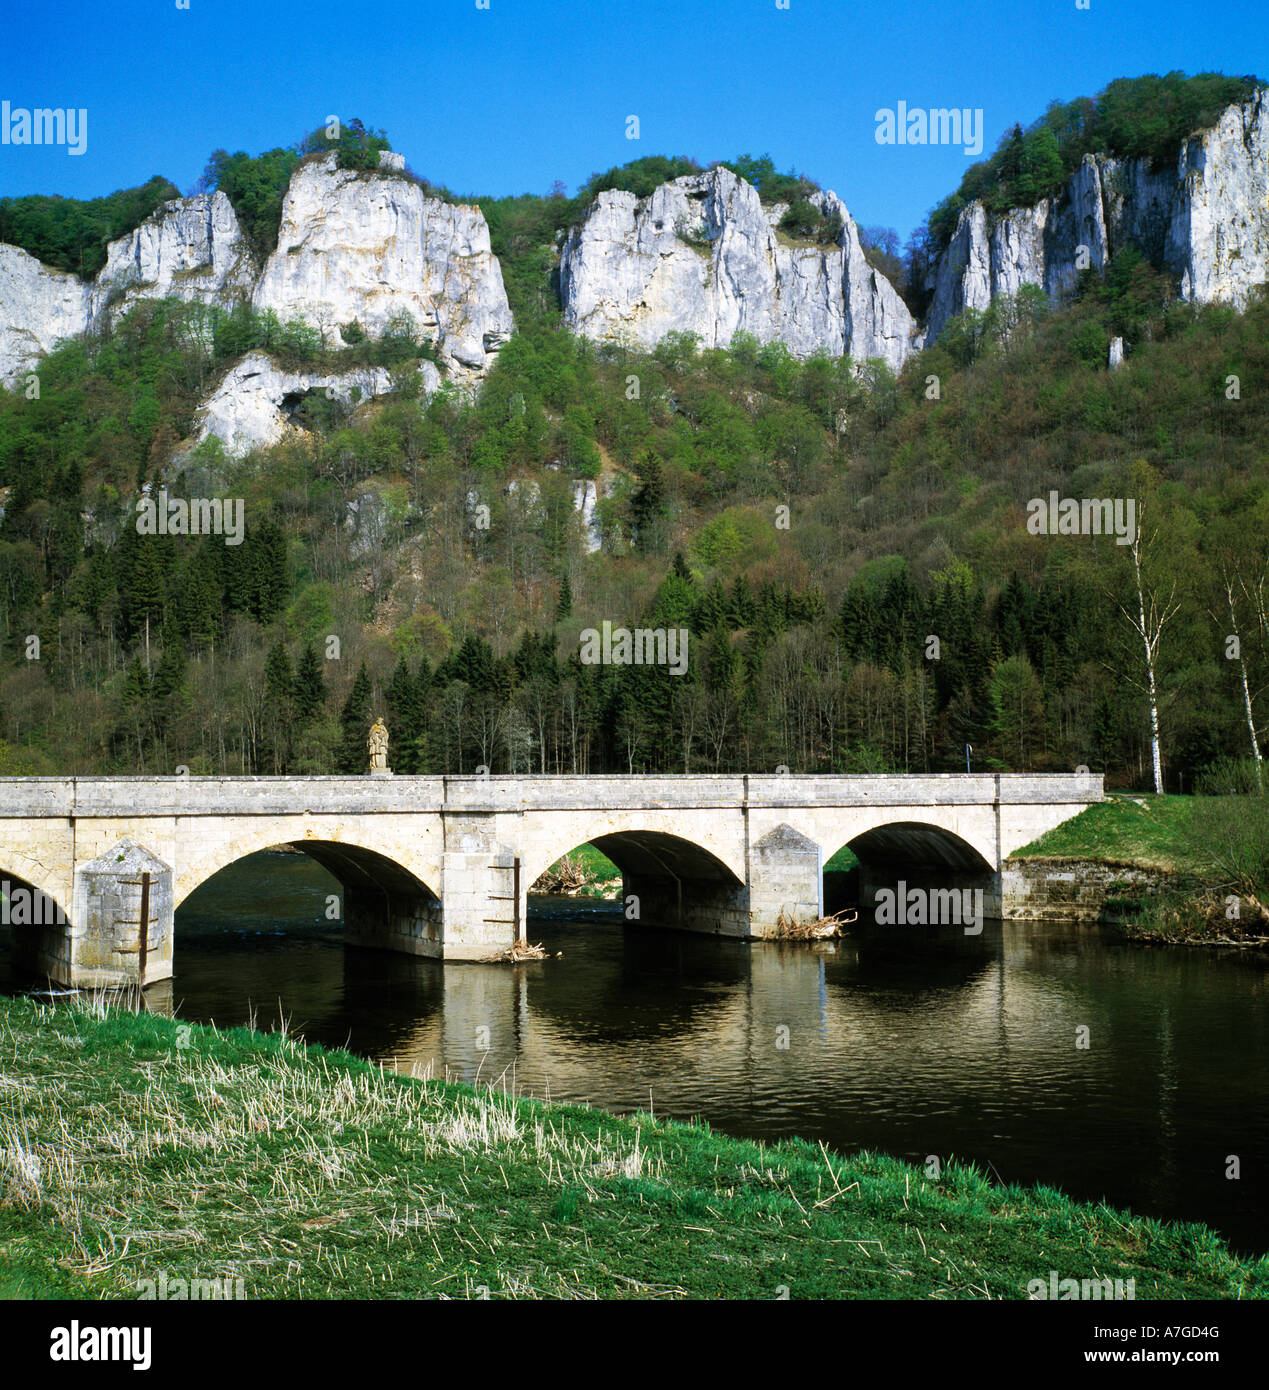 donaubruecke bei beuron hausen im tal naturpark obere donau stock photo royalty free image. Black Bedroom Furniture Sets. Home Design Ideas